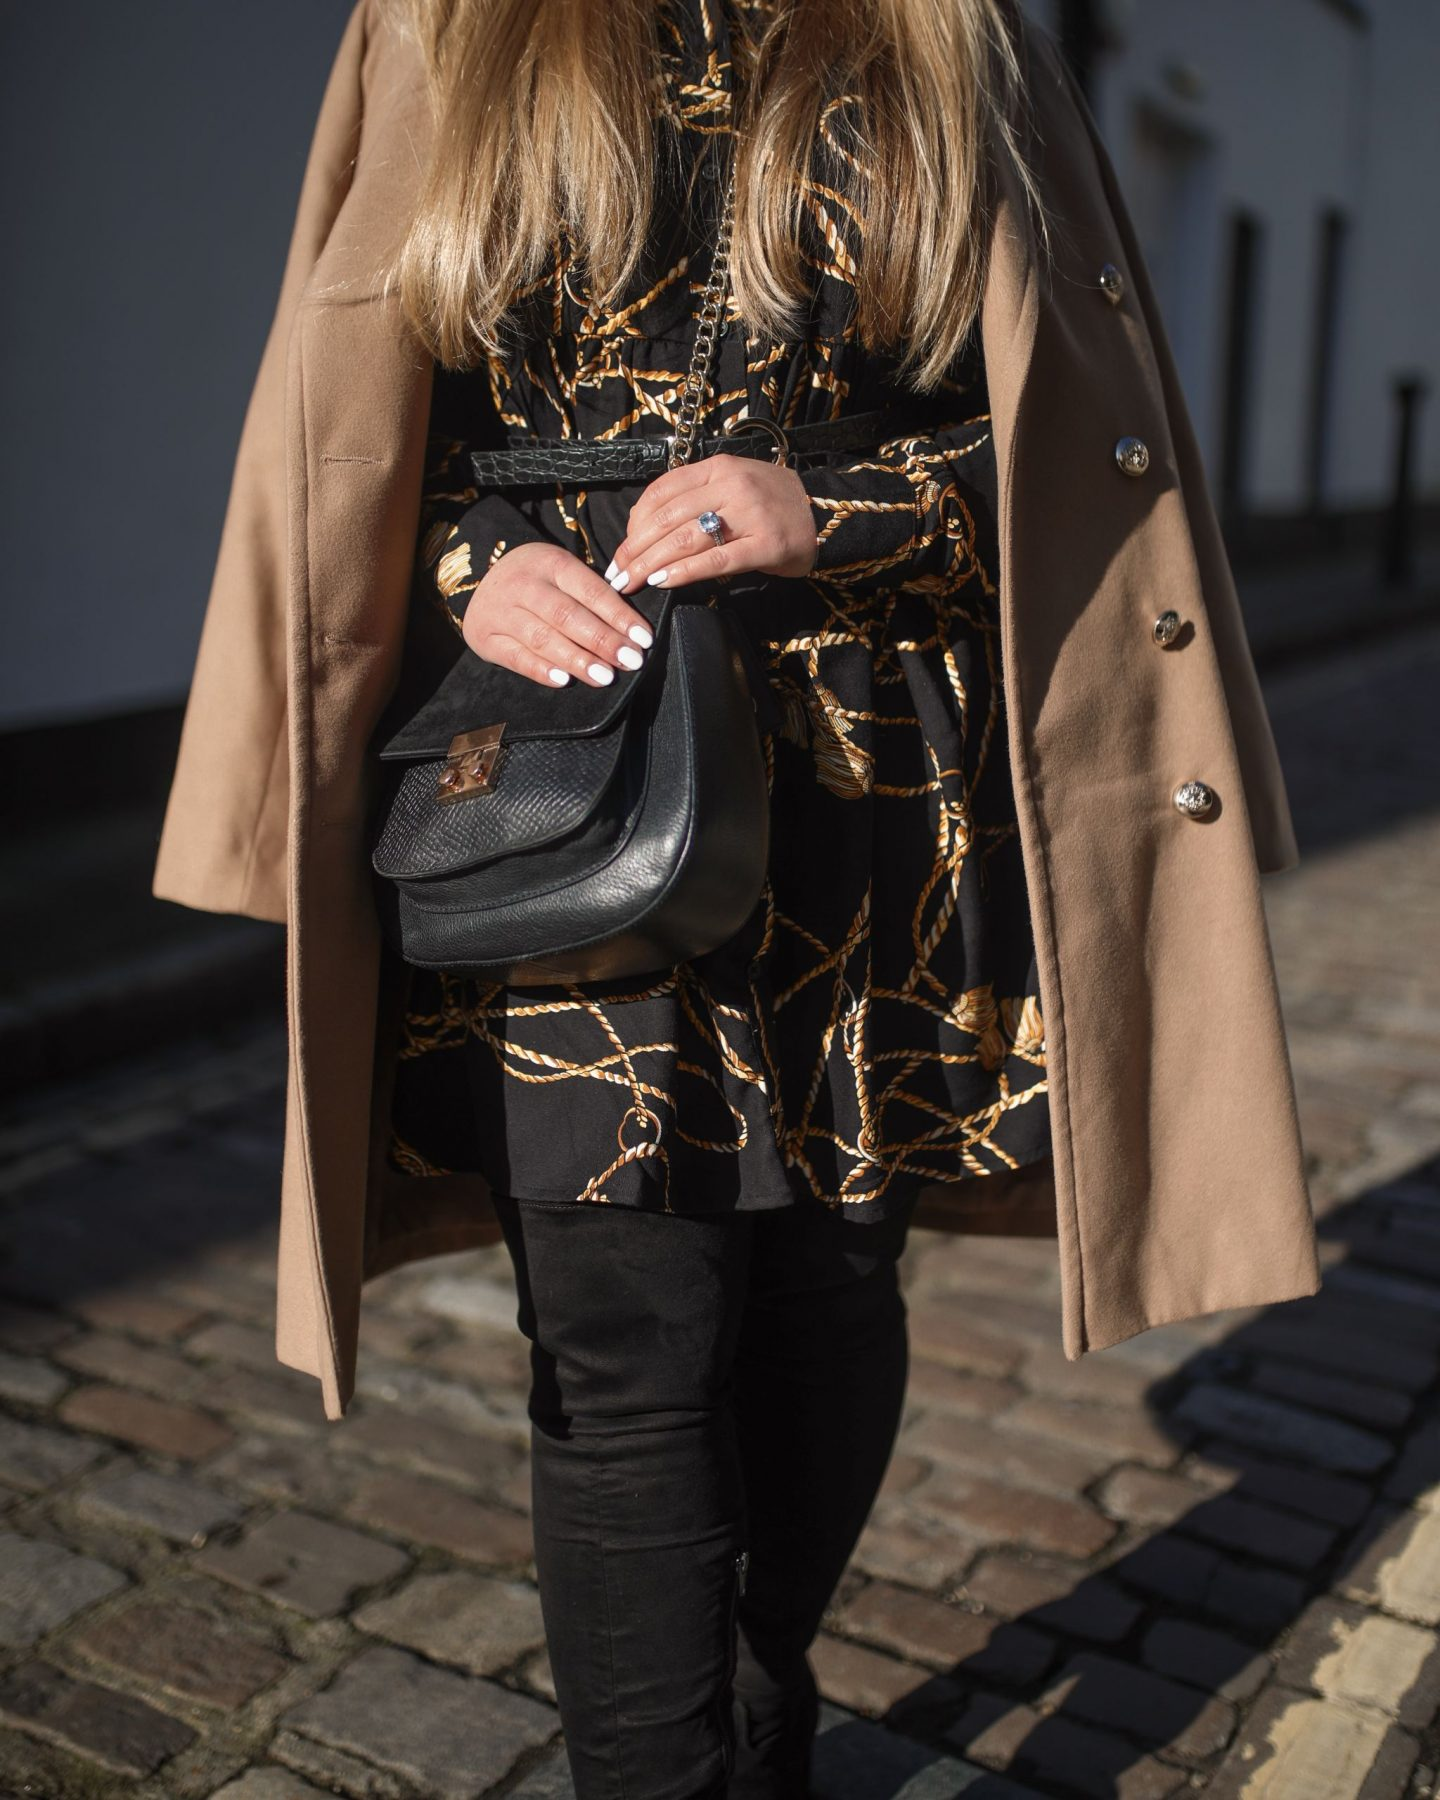 Katie Heath wearing black and gold dress, black boots and camel coat, KALANCHOE